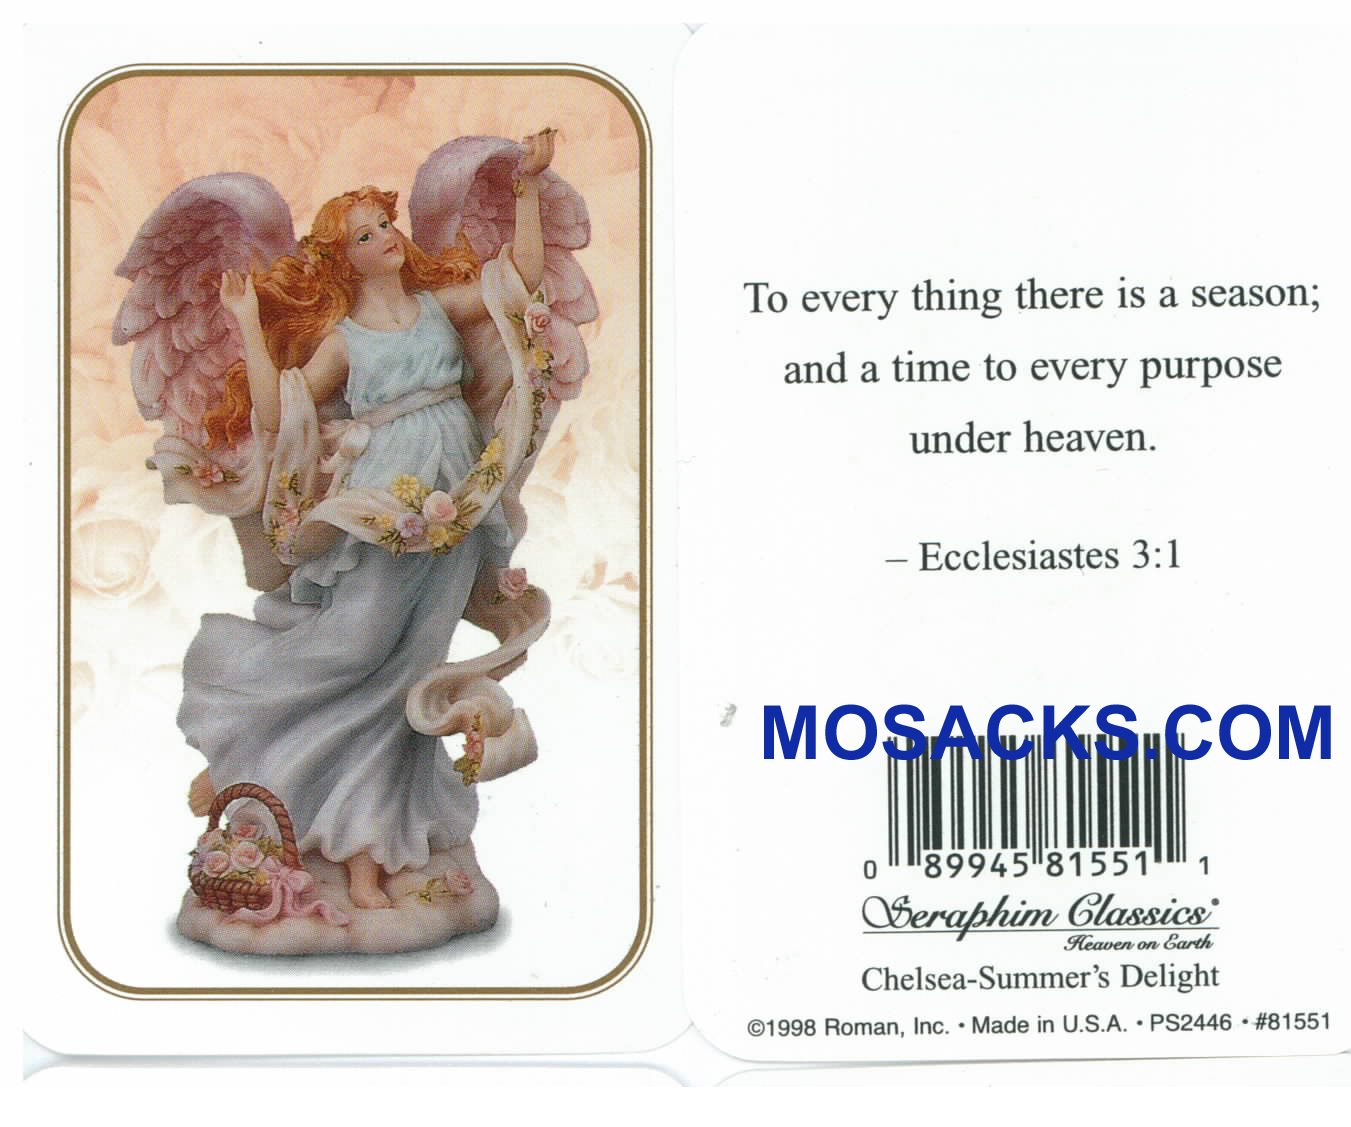 Ecclesiastes 3:1 Seraphim Angel Holy Card-81551